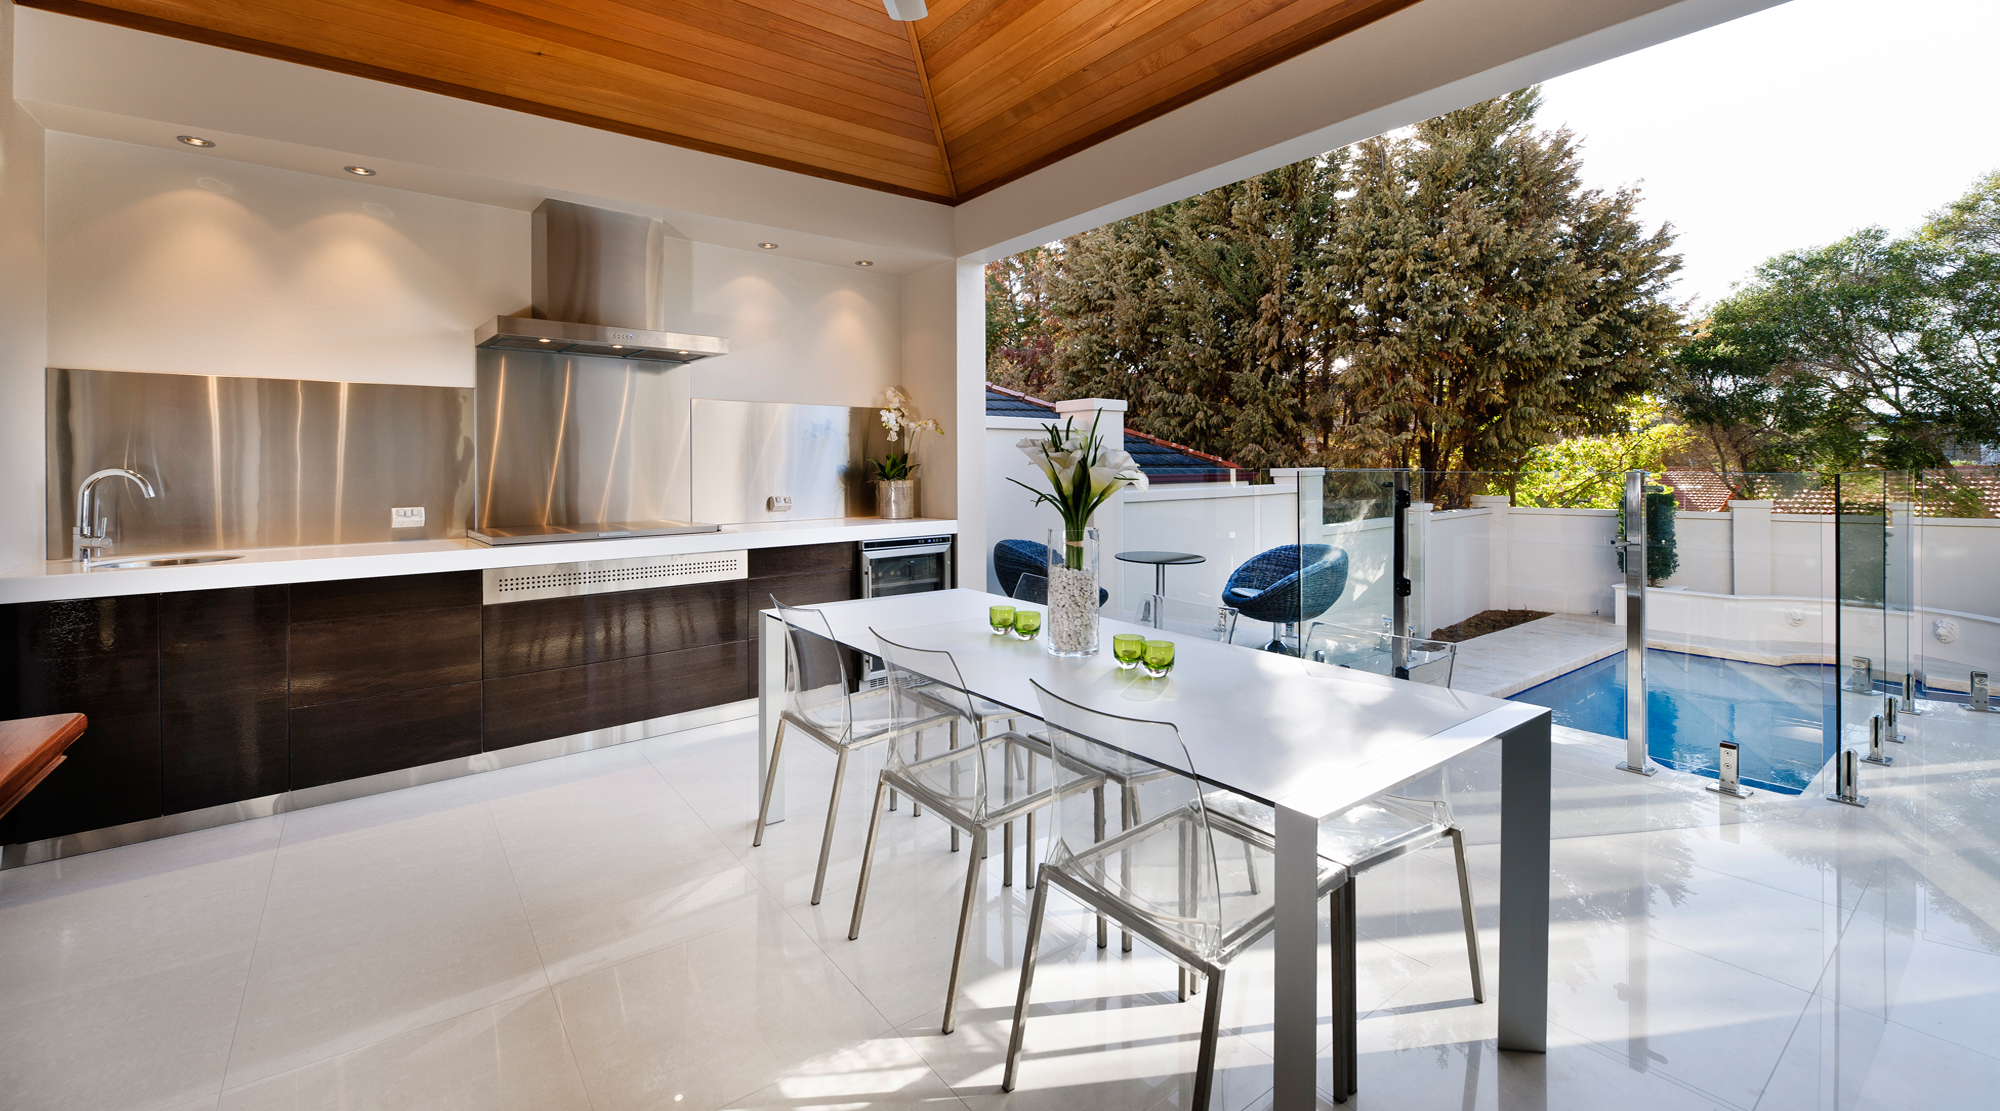 kitchen designs cabinet makers perth custom cabinets reconstituted stone tops kitchen cabinets perth cabinet